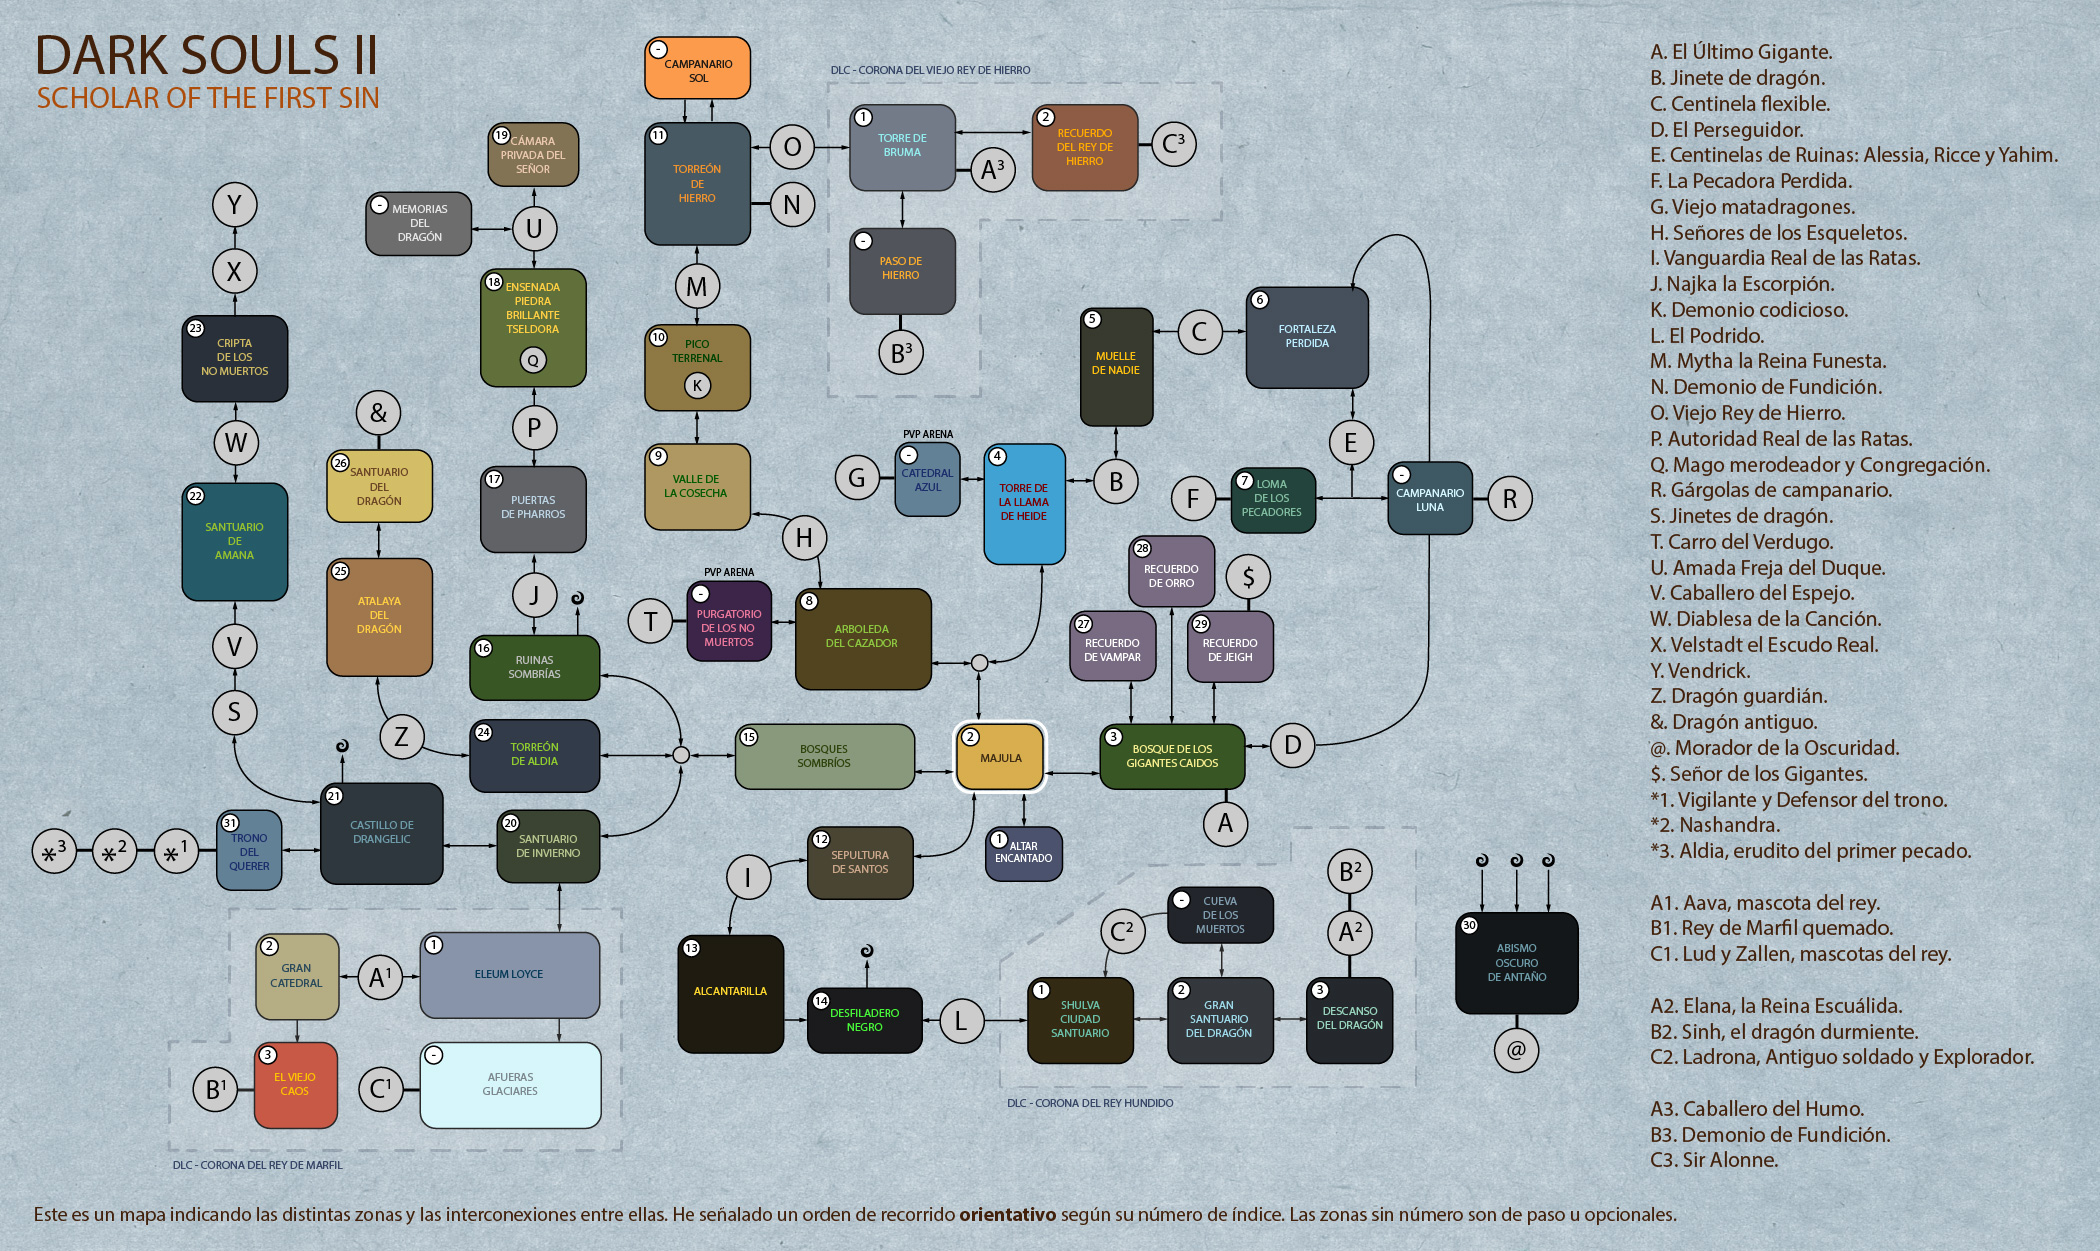 Steam Community :: Guide :: Mapa Orientativo - DARK SOULS II ... on tomb raider ii map, crusader kings ii map, five nights at freddy's map, guild wars 2 map, tales of symphonia chronicles map, divinity ii map, devil may cry map, demon's souls map, metal gear solid 5 map, diablo ii map, lineage ii map, jak ii map, the witcher map, dead space map,